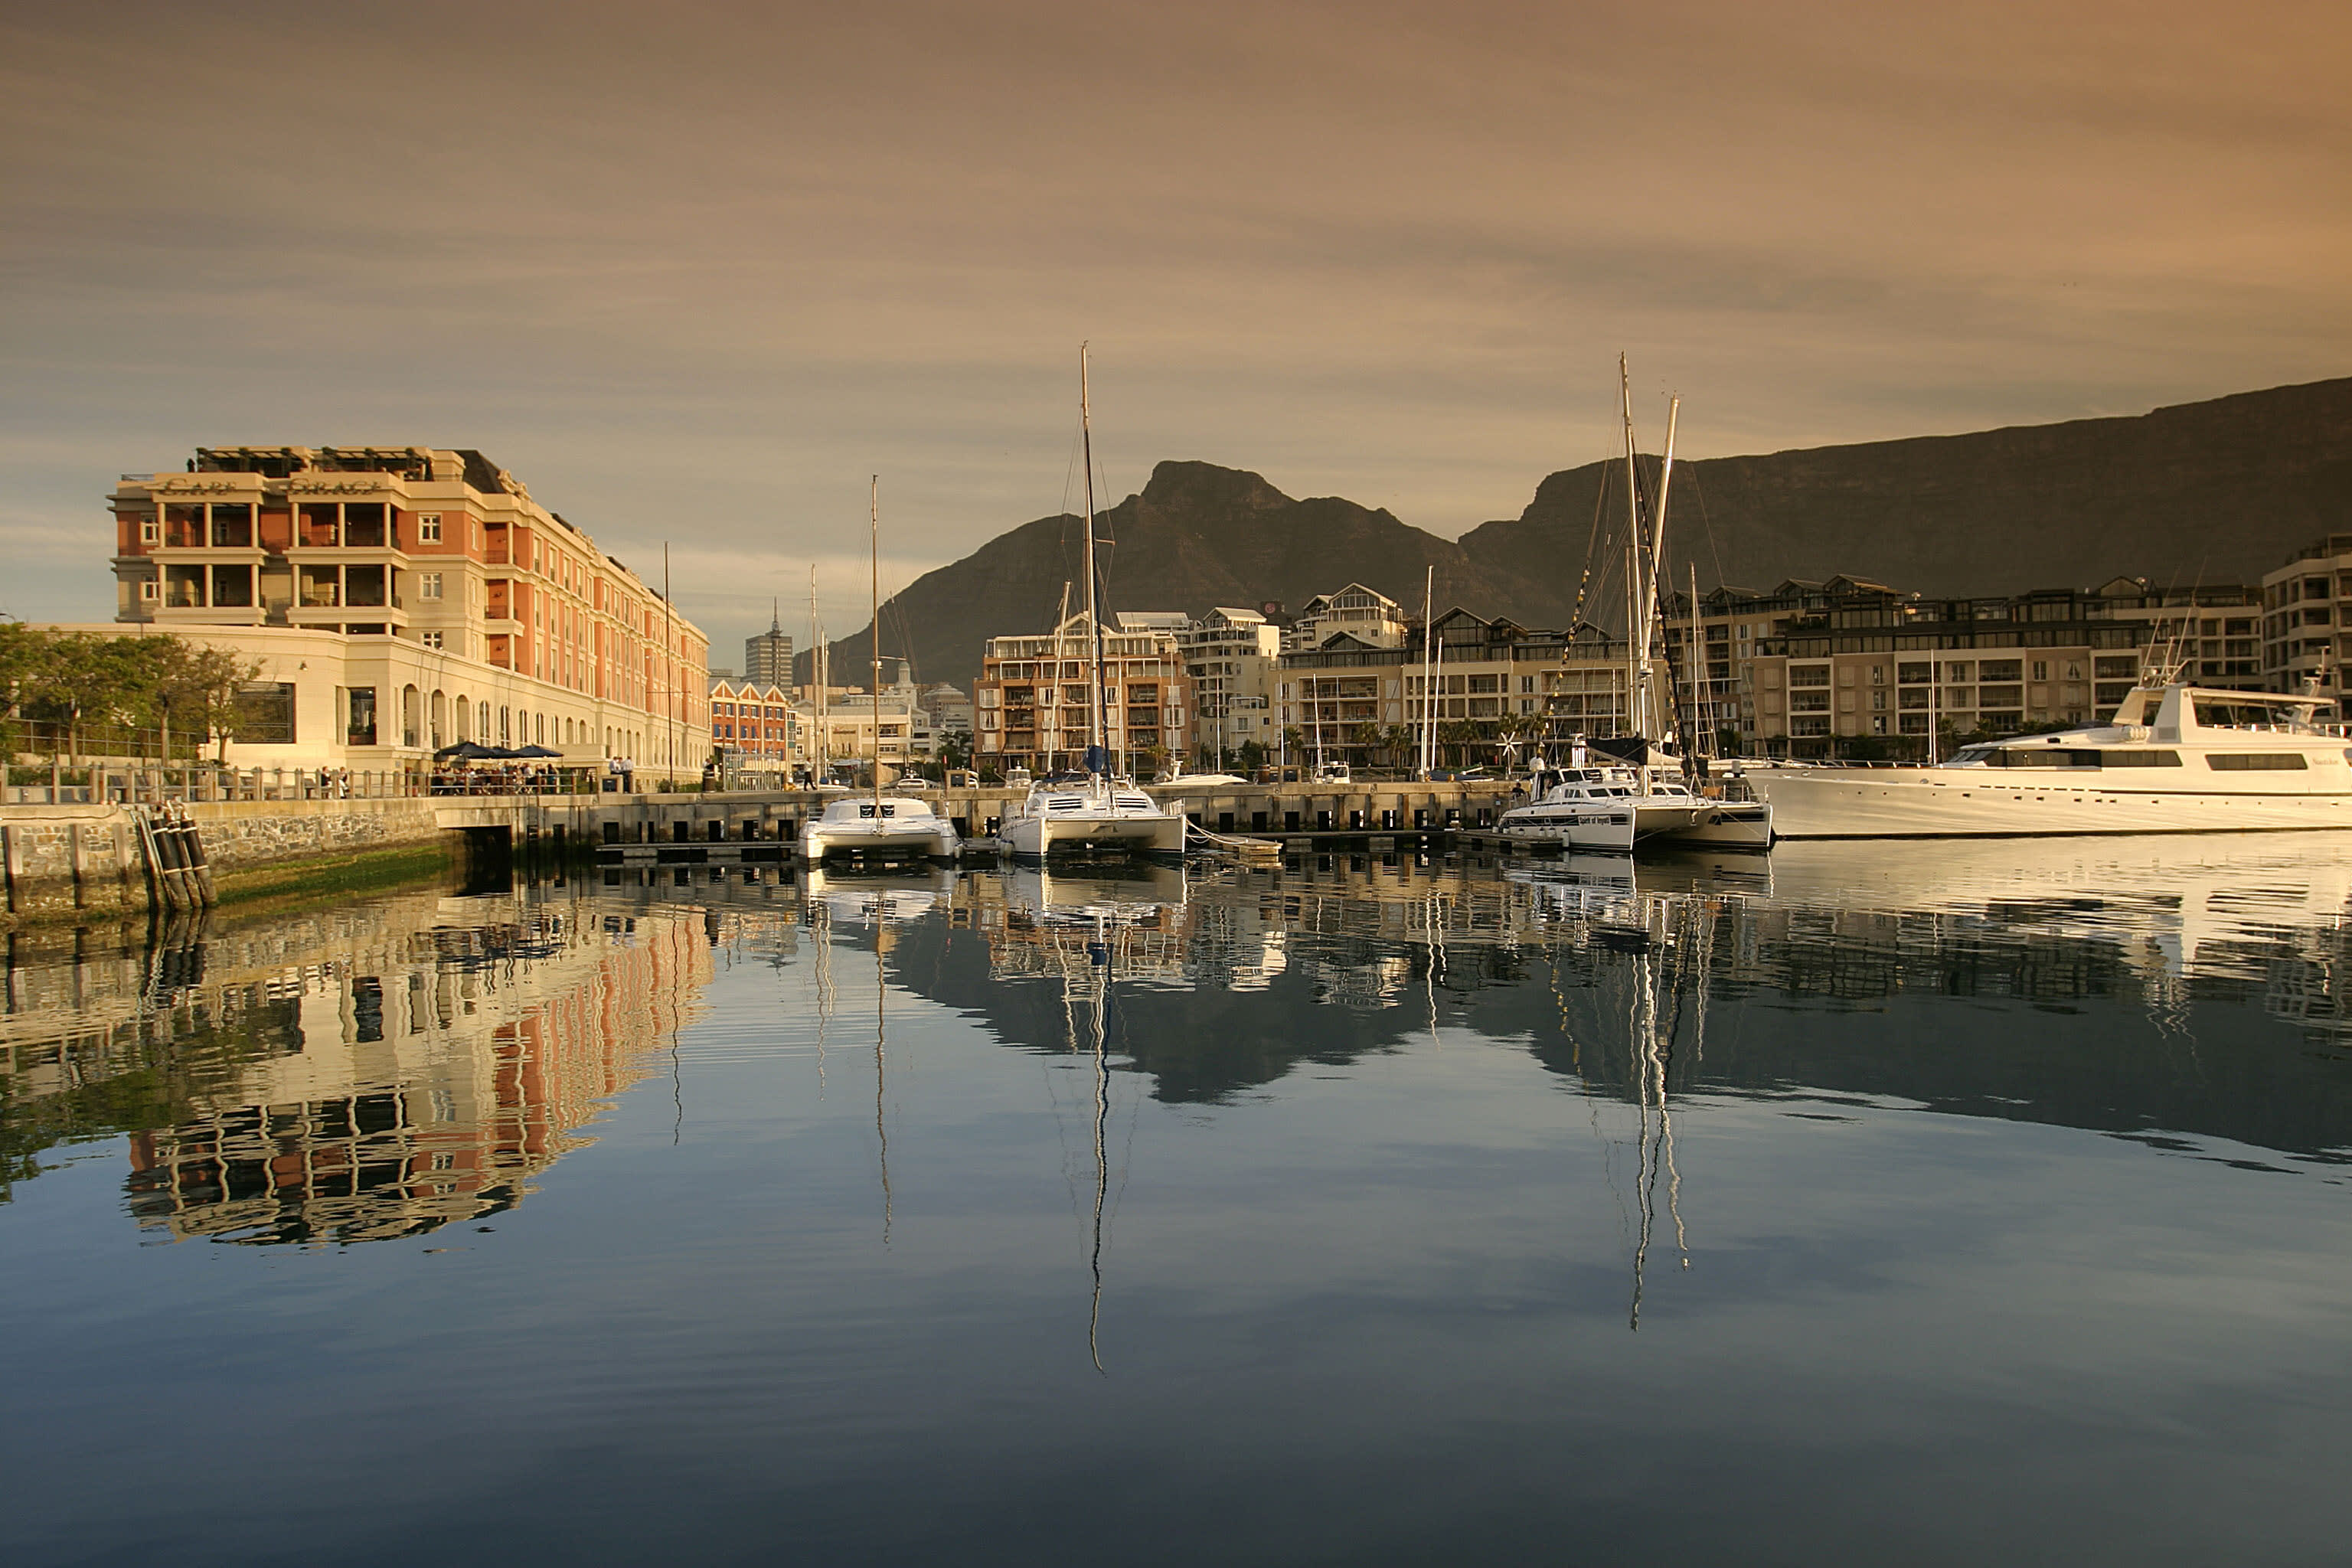 Narina with yachts and buildings in the background surrounded by mountains